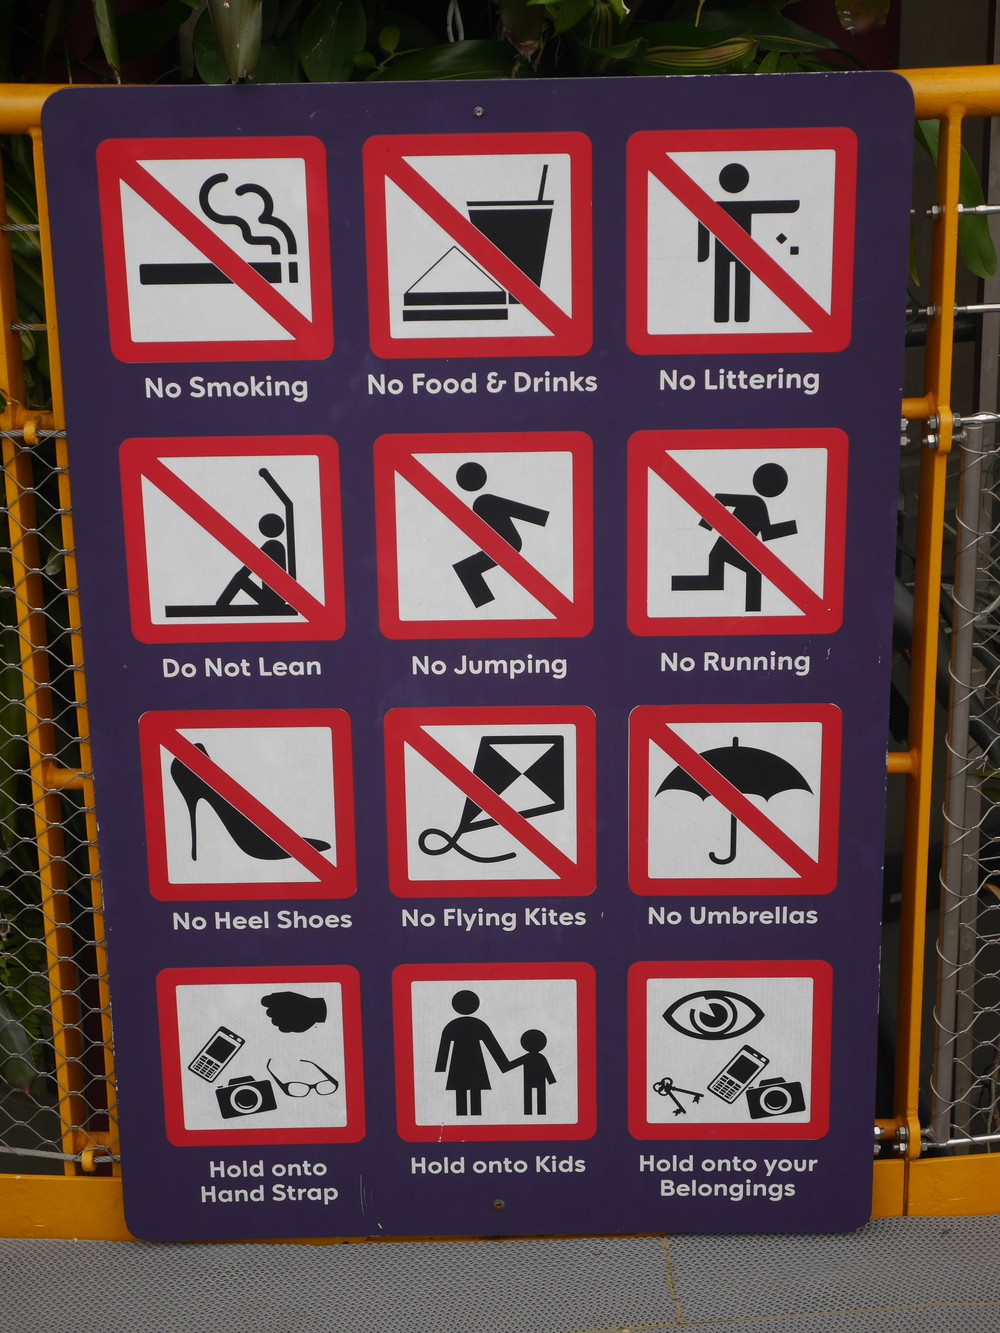 This is Singapore, and we have rules here.